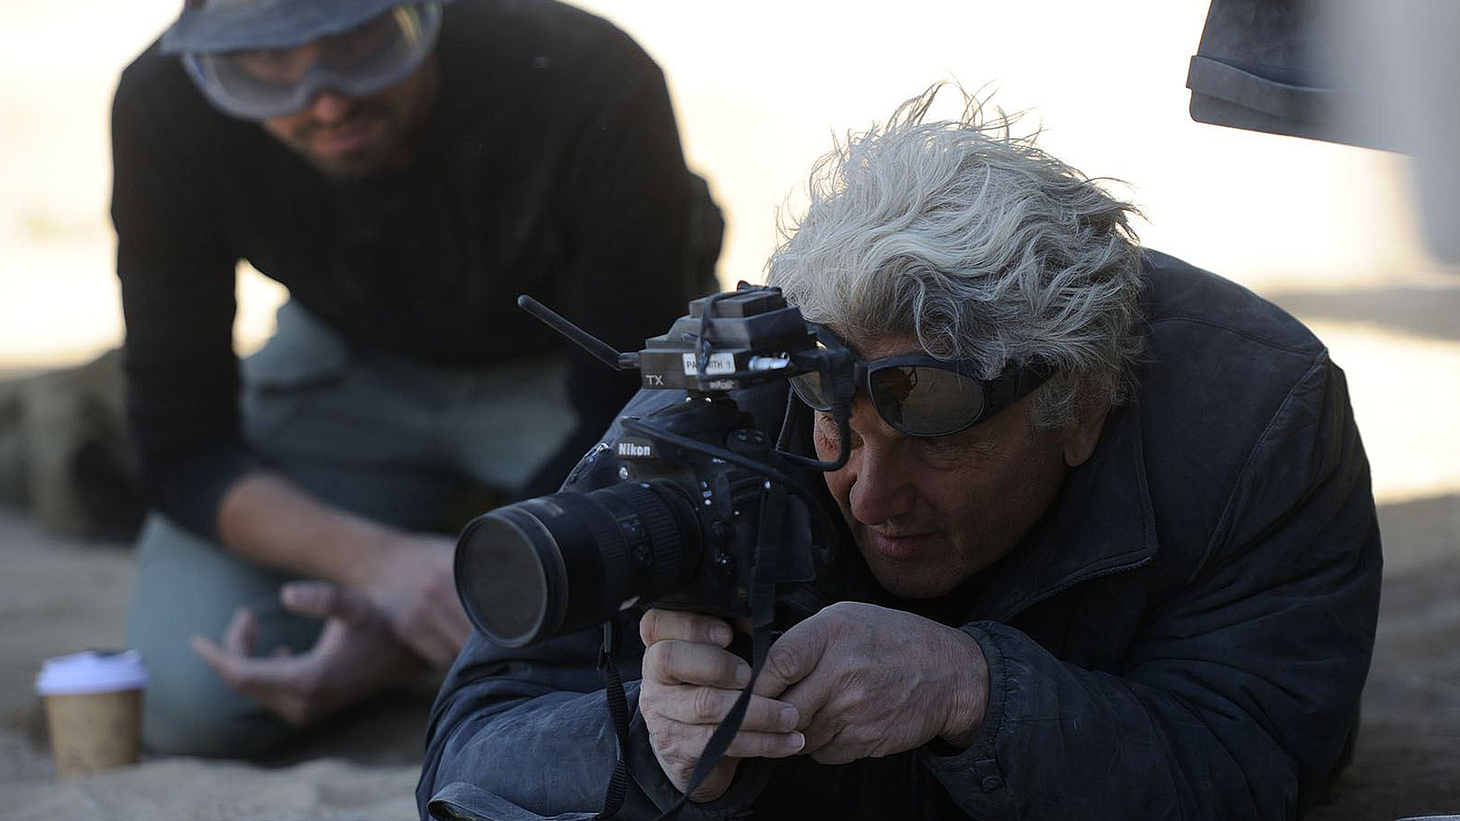 Mad Max: Fury Road director George Miller has had a successful and exceptionally varied career. He tells us what all his films have in common, despite the differing subject matter.